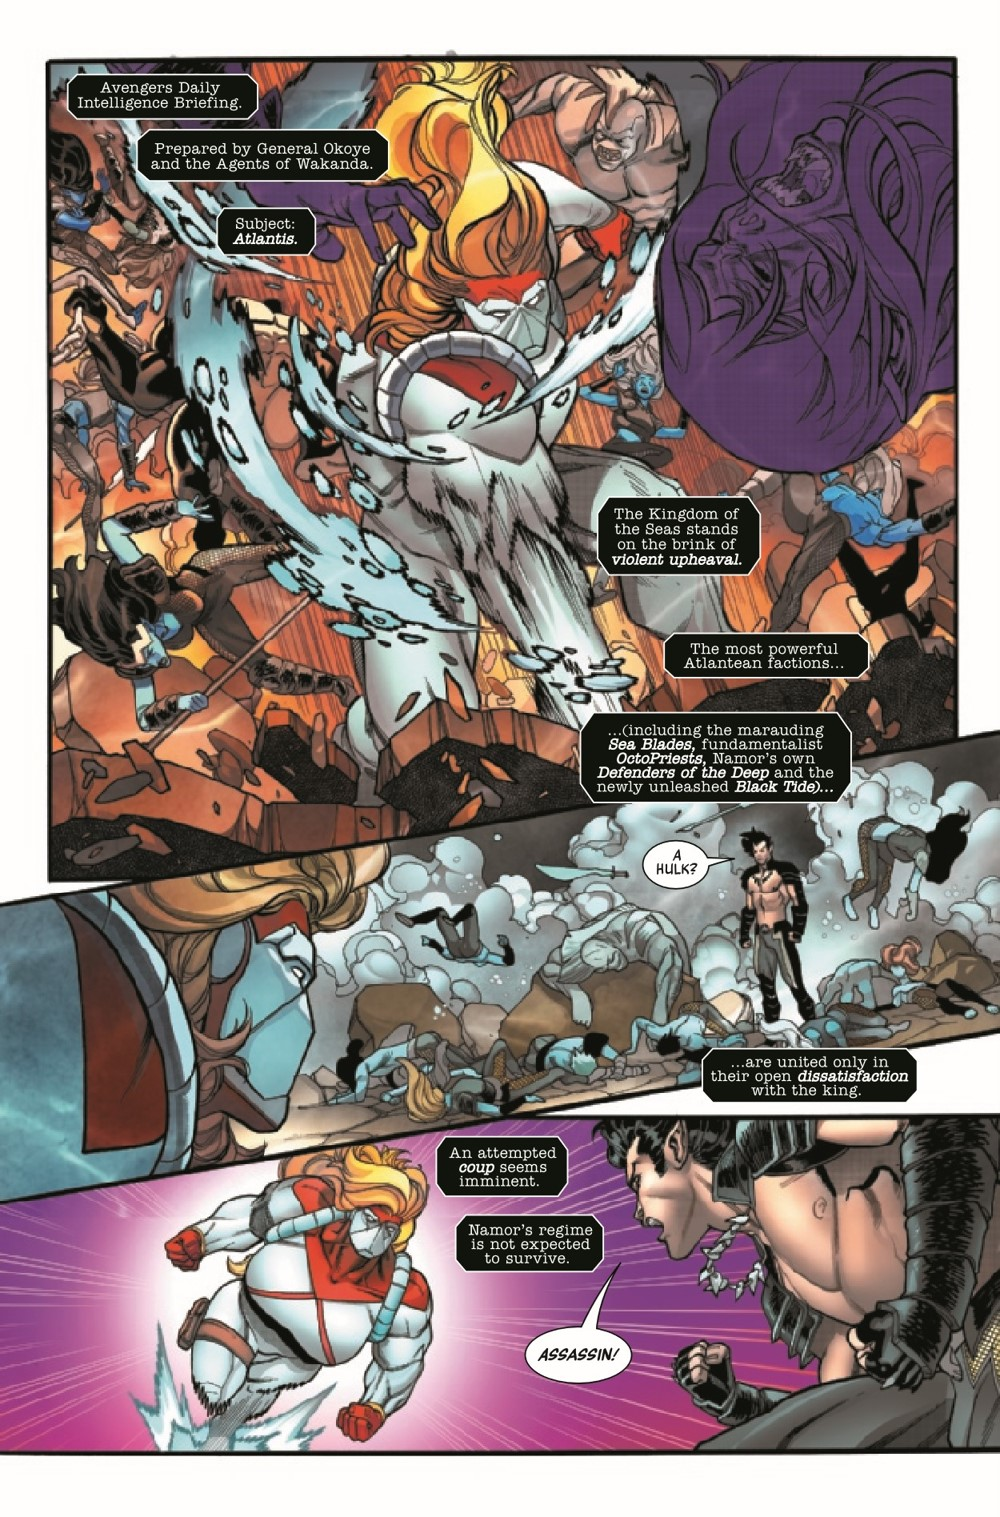 AVEN2018049_Preview-6 ComicList Previews: AVENGERS #49